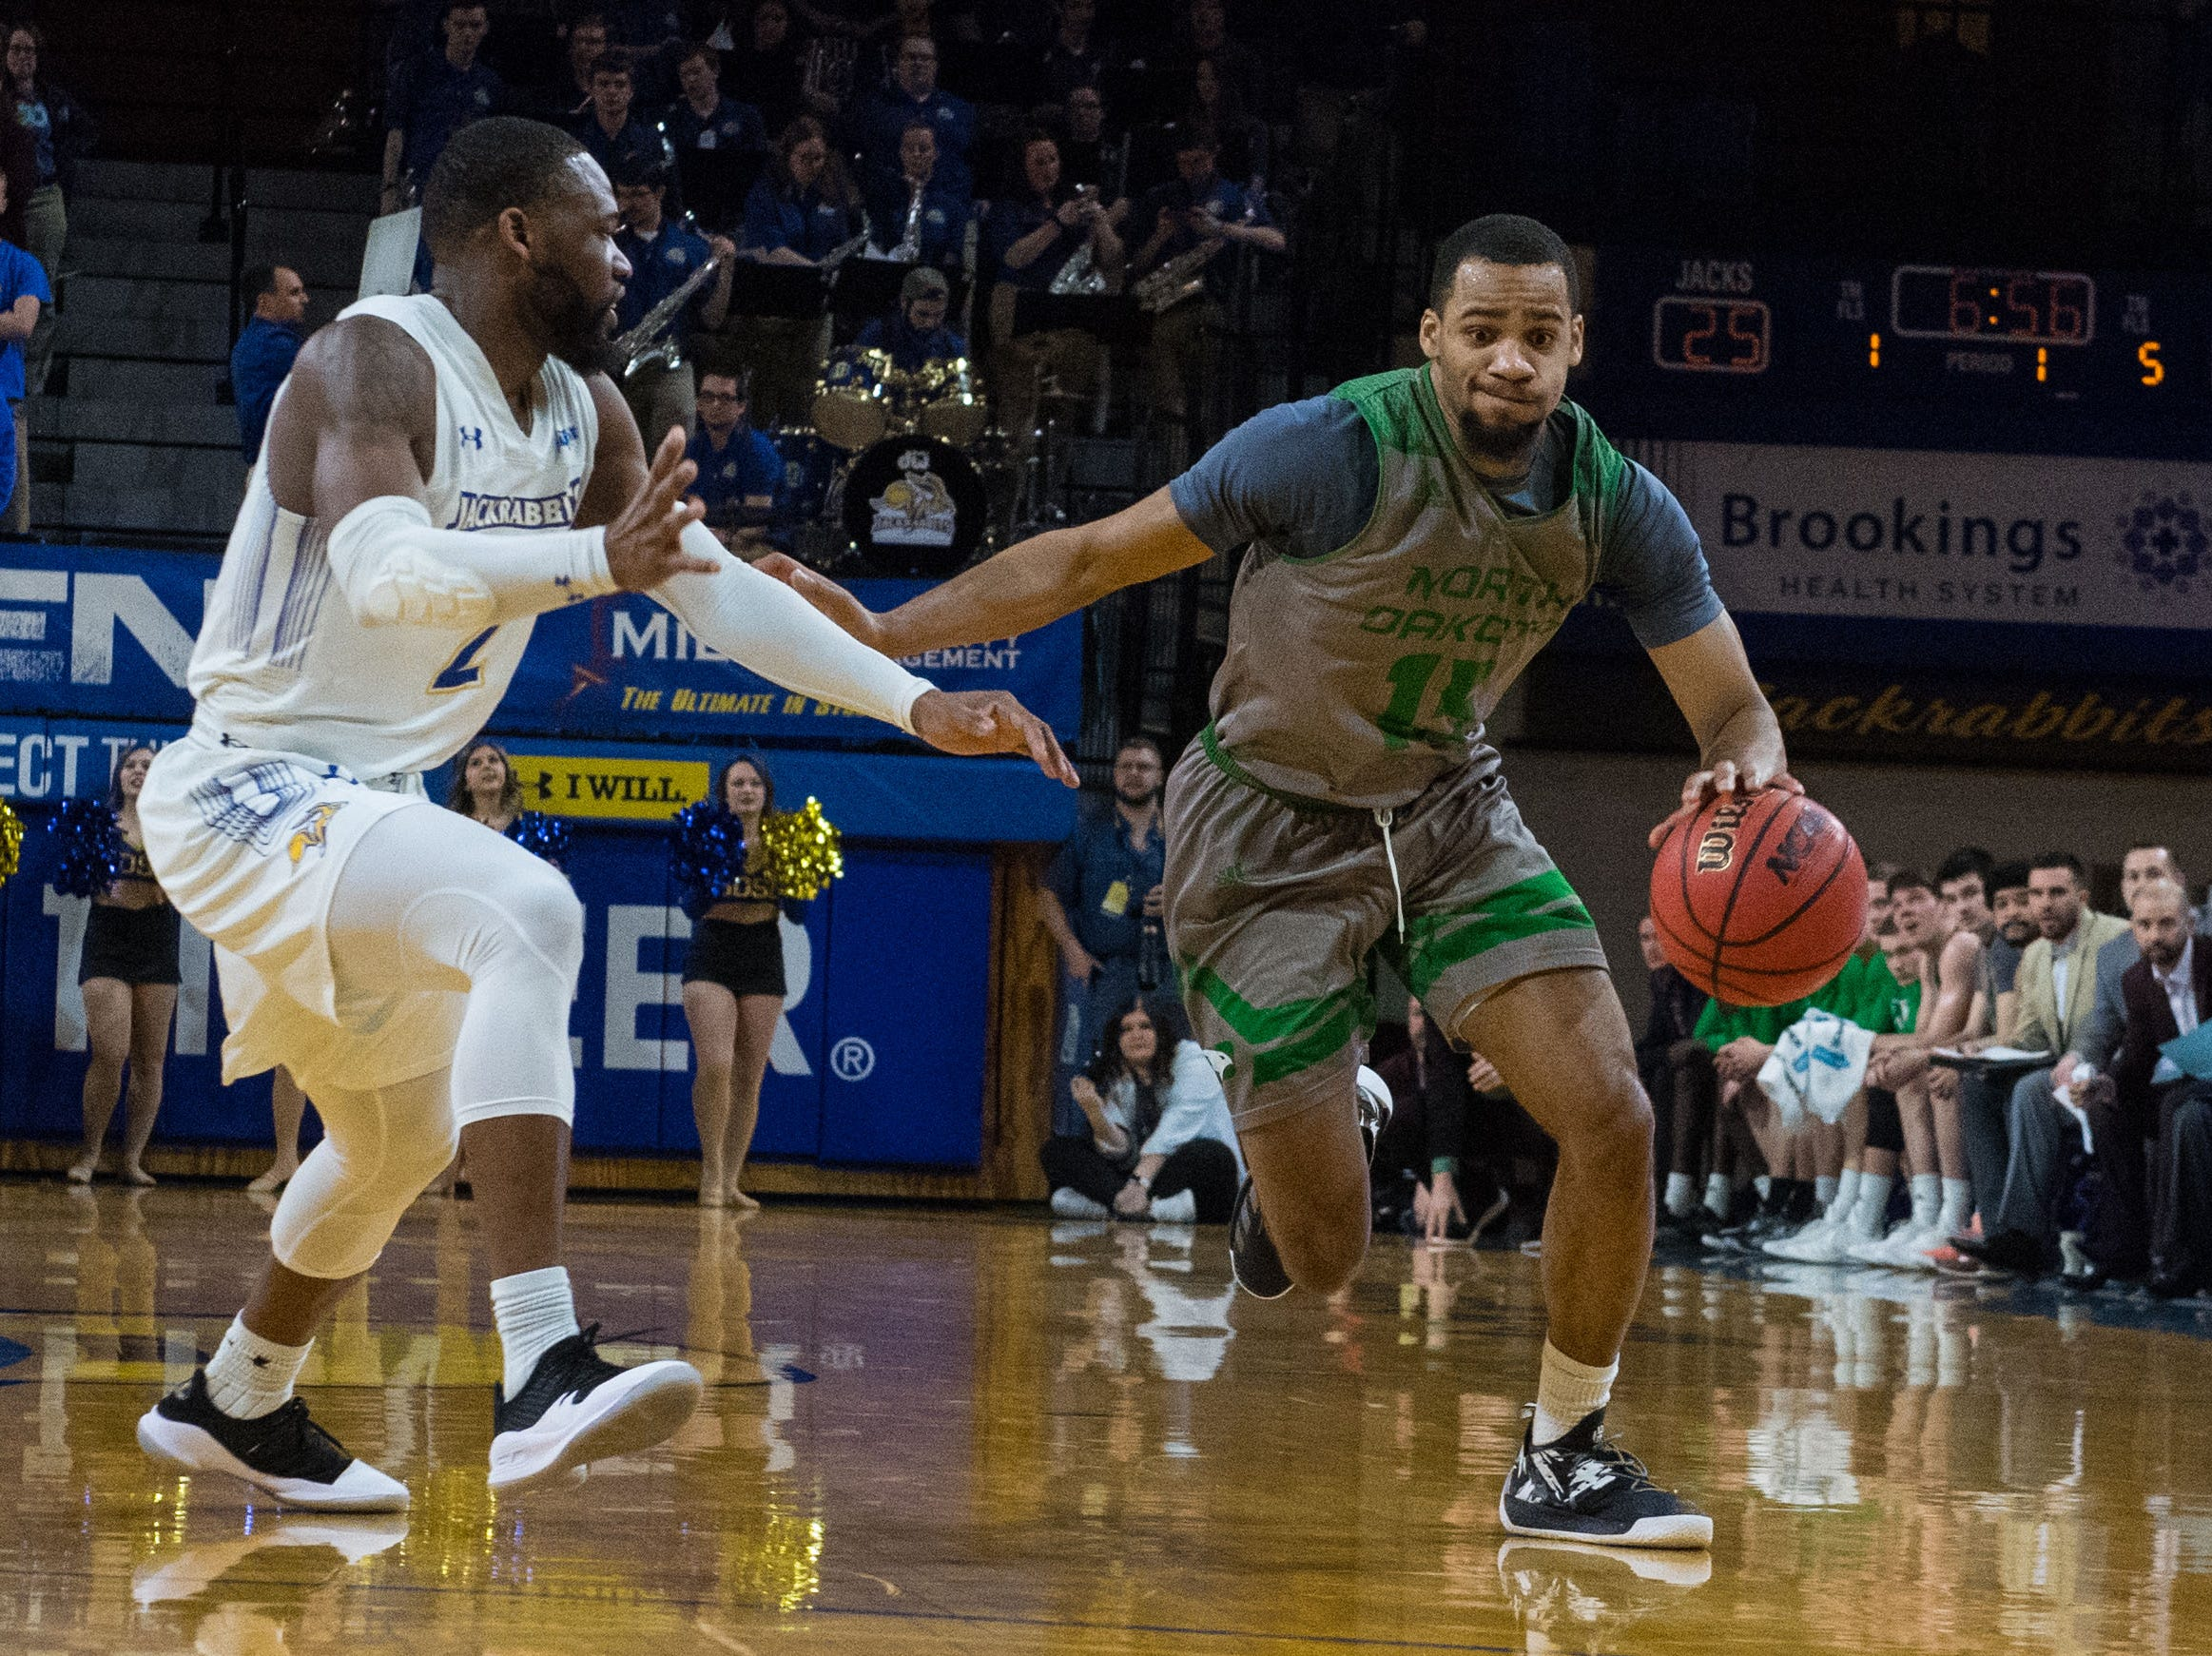 North Dakota's Cortez Seales (15) dribbles the ball past South Dakota State's Tevin King (2) during a game in Brookings, S.D., Saturday, Feb. 9, 2019.